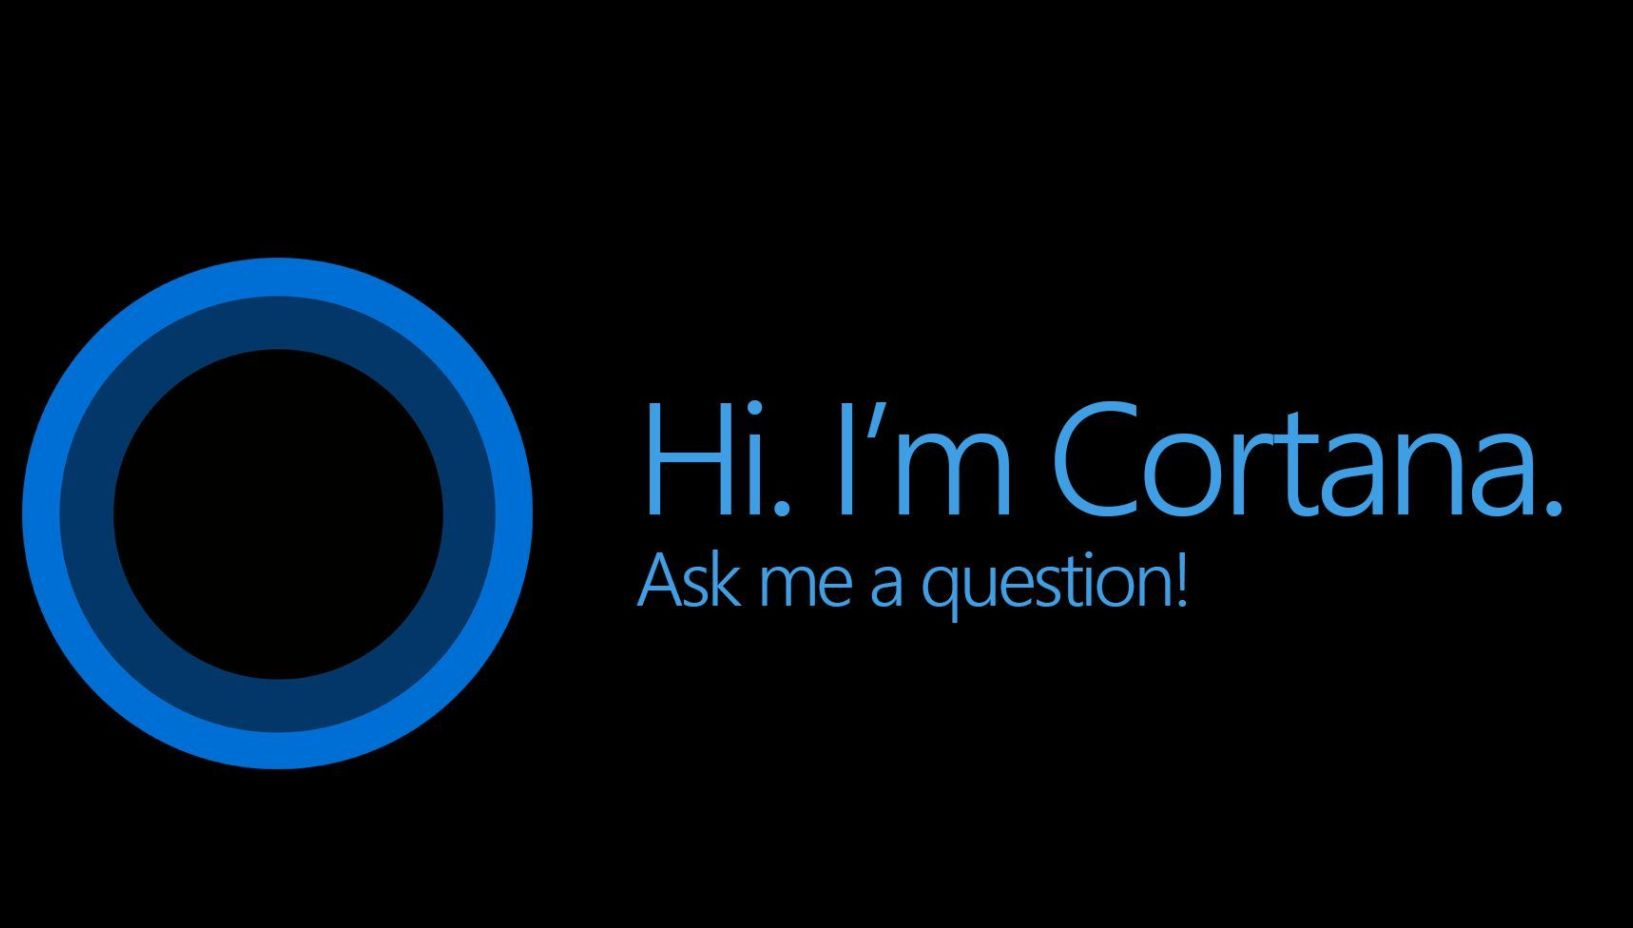 Windows 10 Cortana Is Reportedly Broken